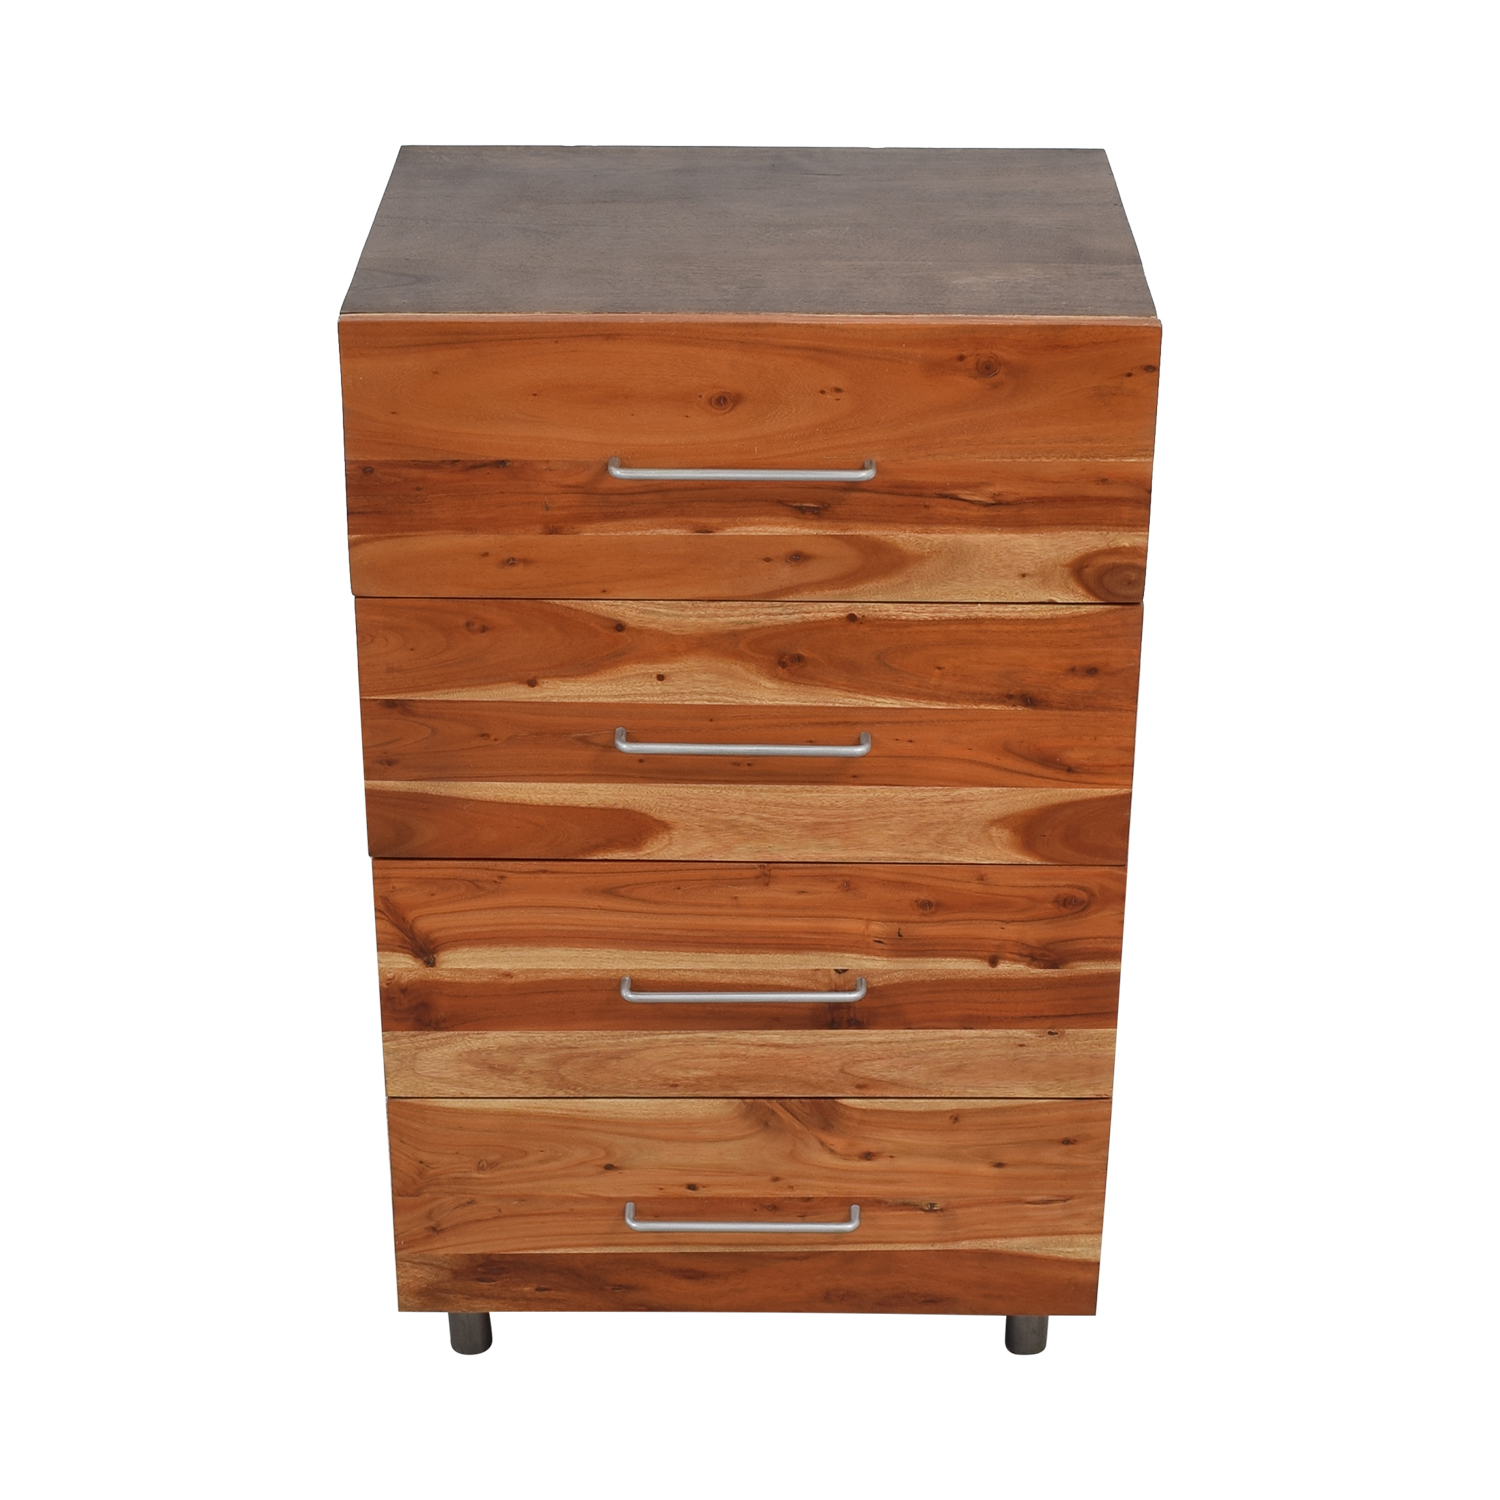 buy CB2 Rustic Junction Tall Chest CB2 Storage